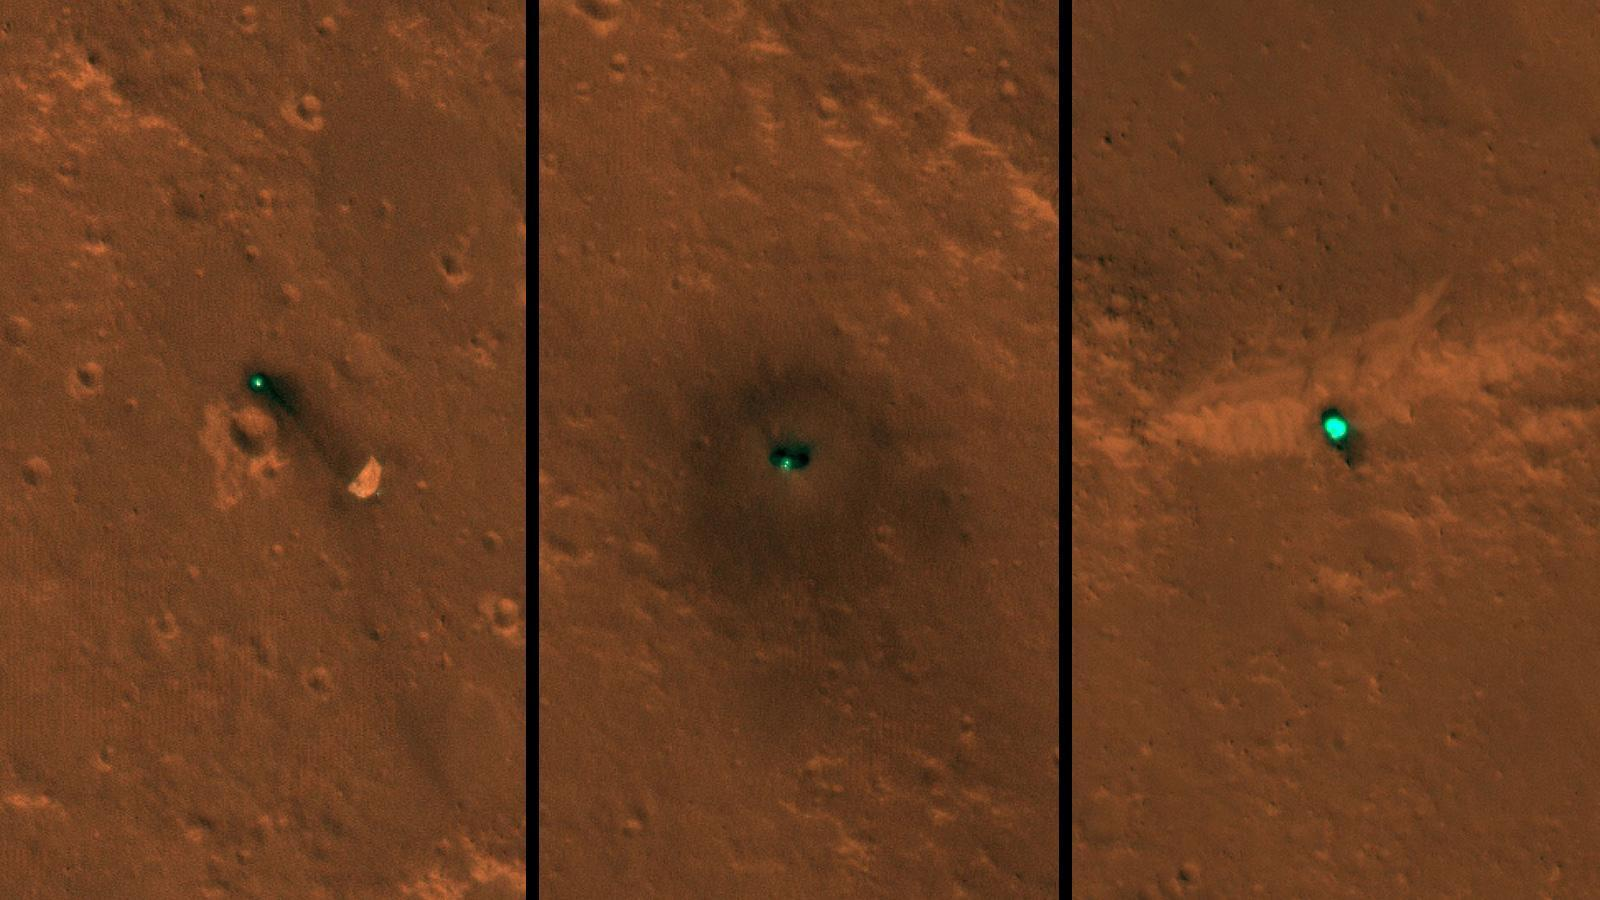 three views of hardware on the surface of Mars seen from above